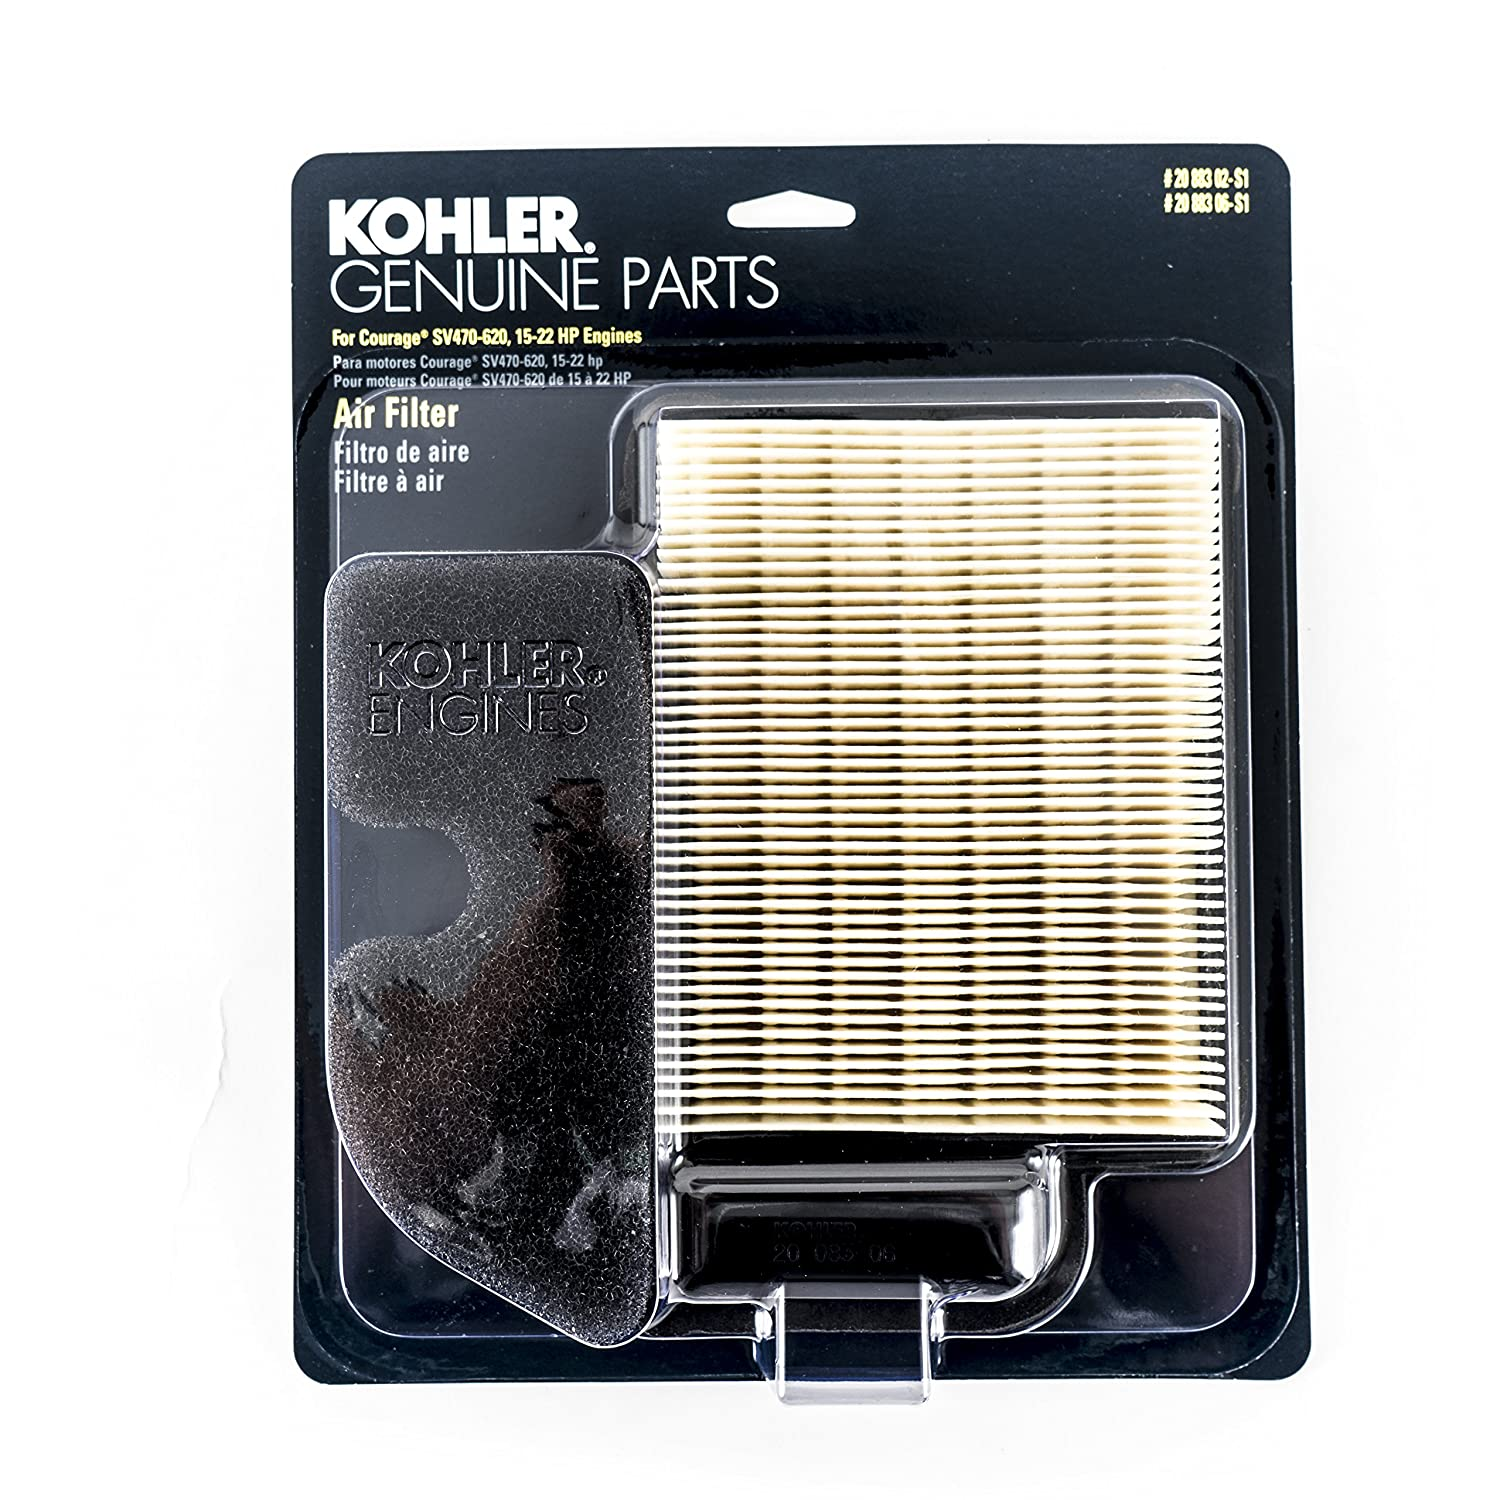 Air Filter For Kohler Courage Single Cylinder 4 Cycle 22 Hp Engine Diagram Engines 2088302s1c Lawn Mower Filters Garden Outdoor